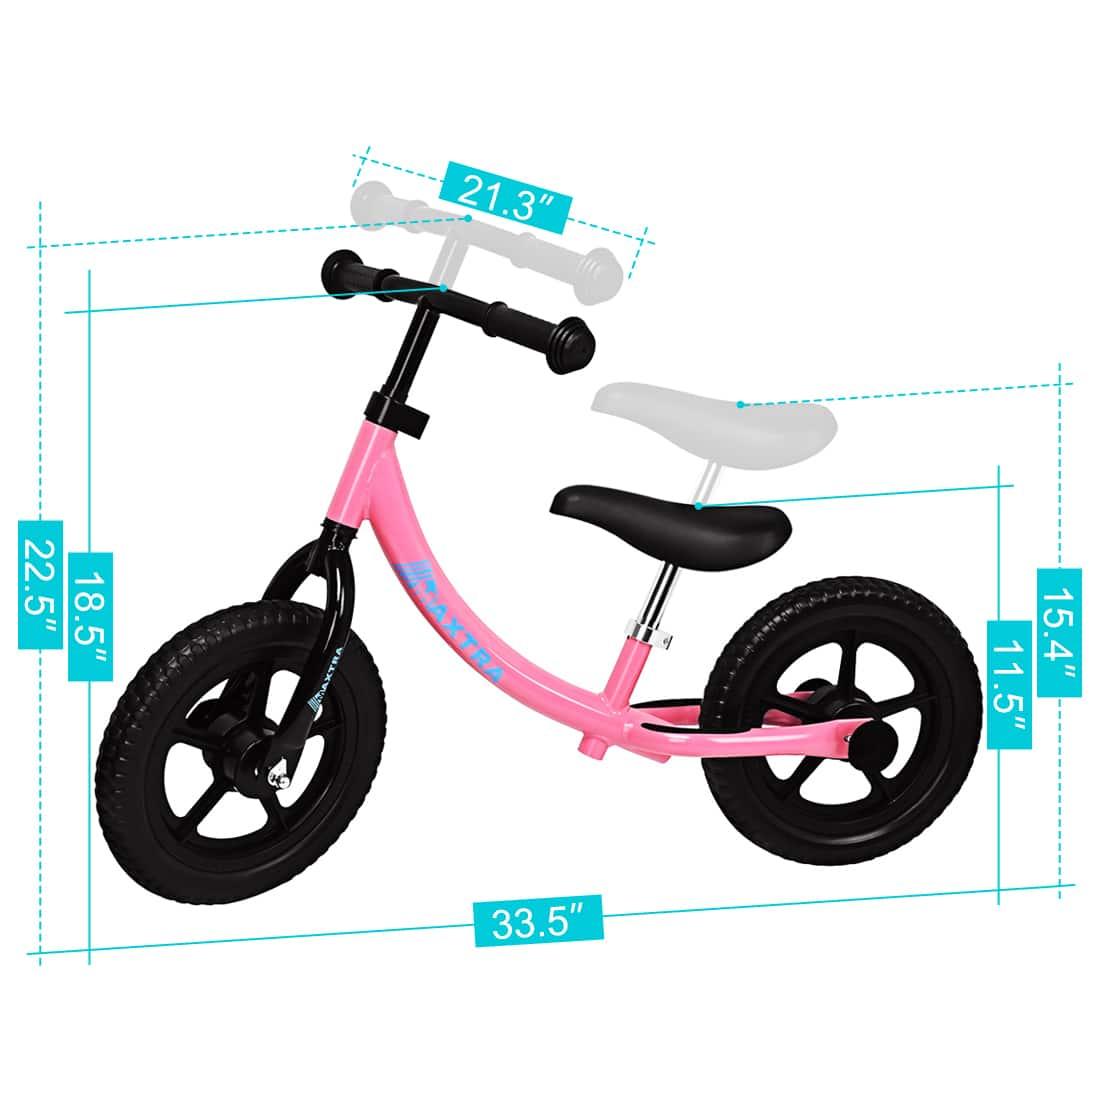 12'' Ride and Glide Sports Balance Bike No-Pedal only for $49.99 W/FS @Wm---Order soon